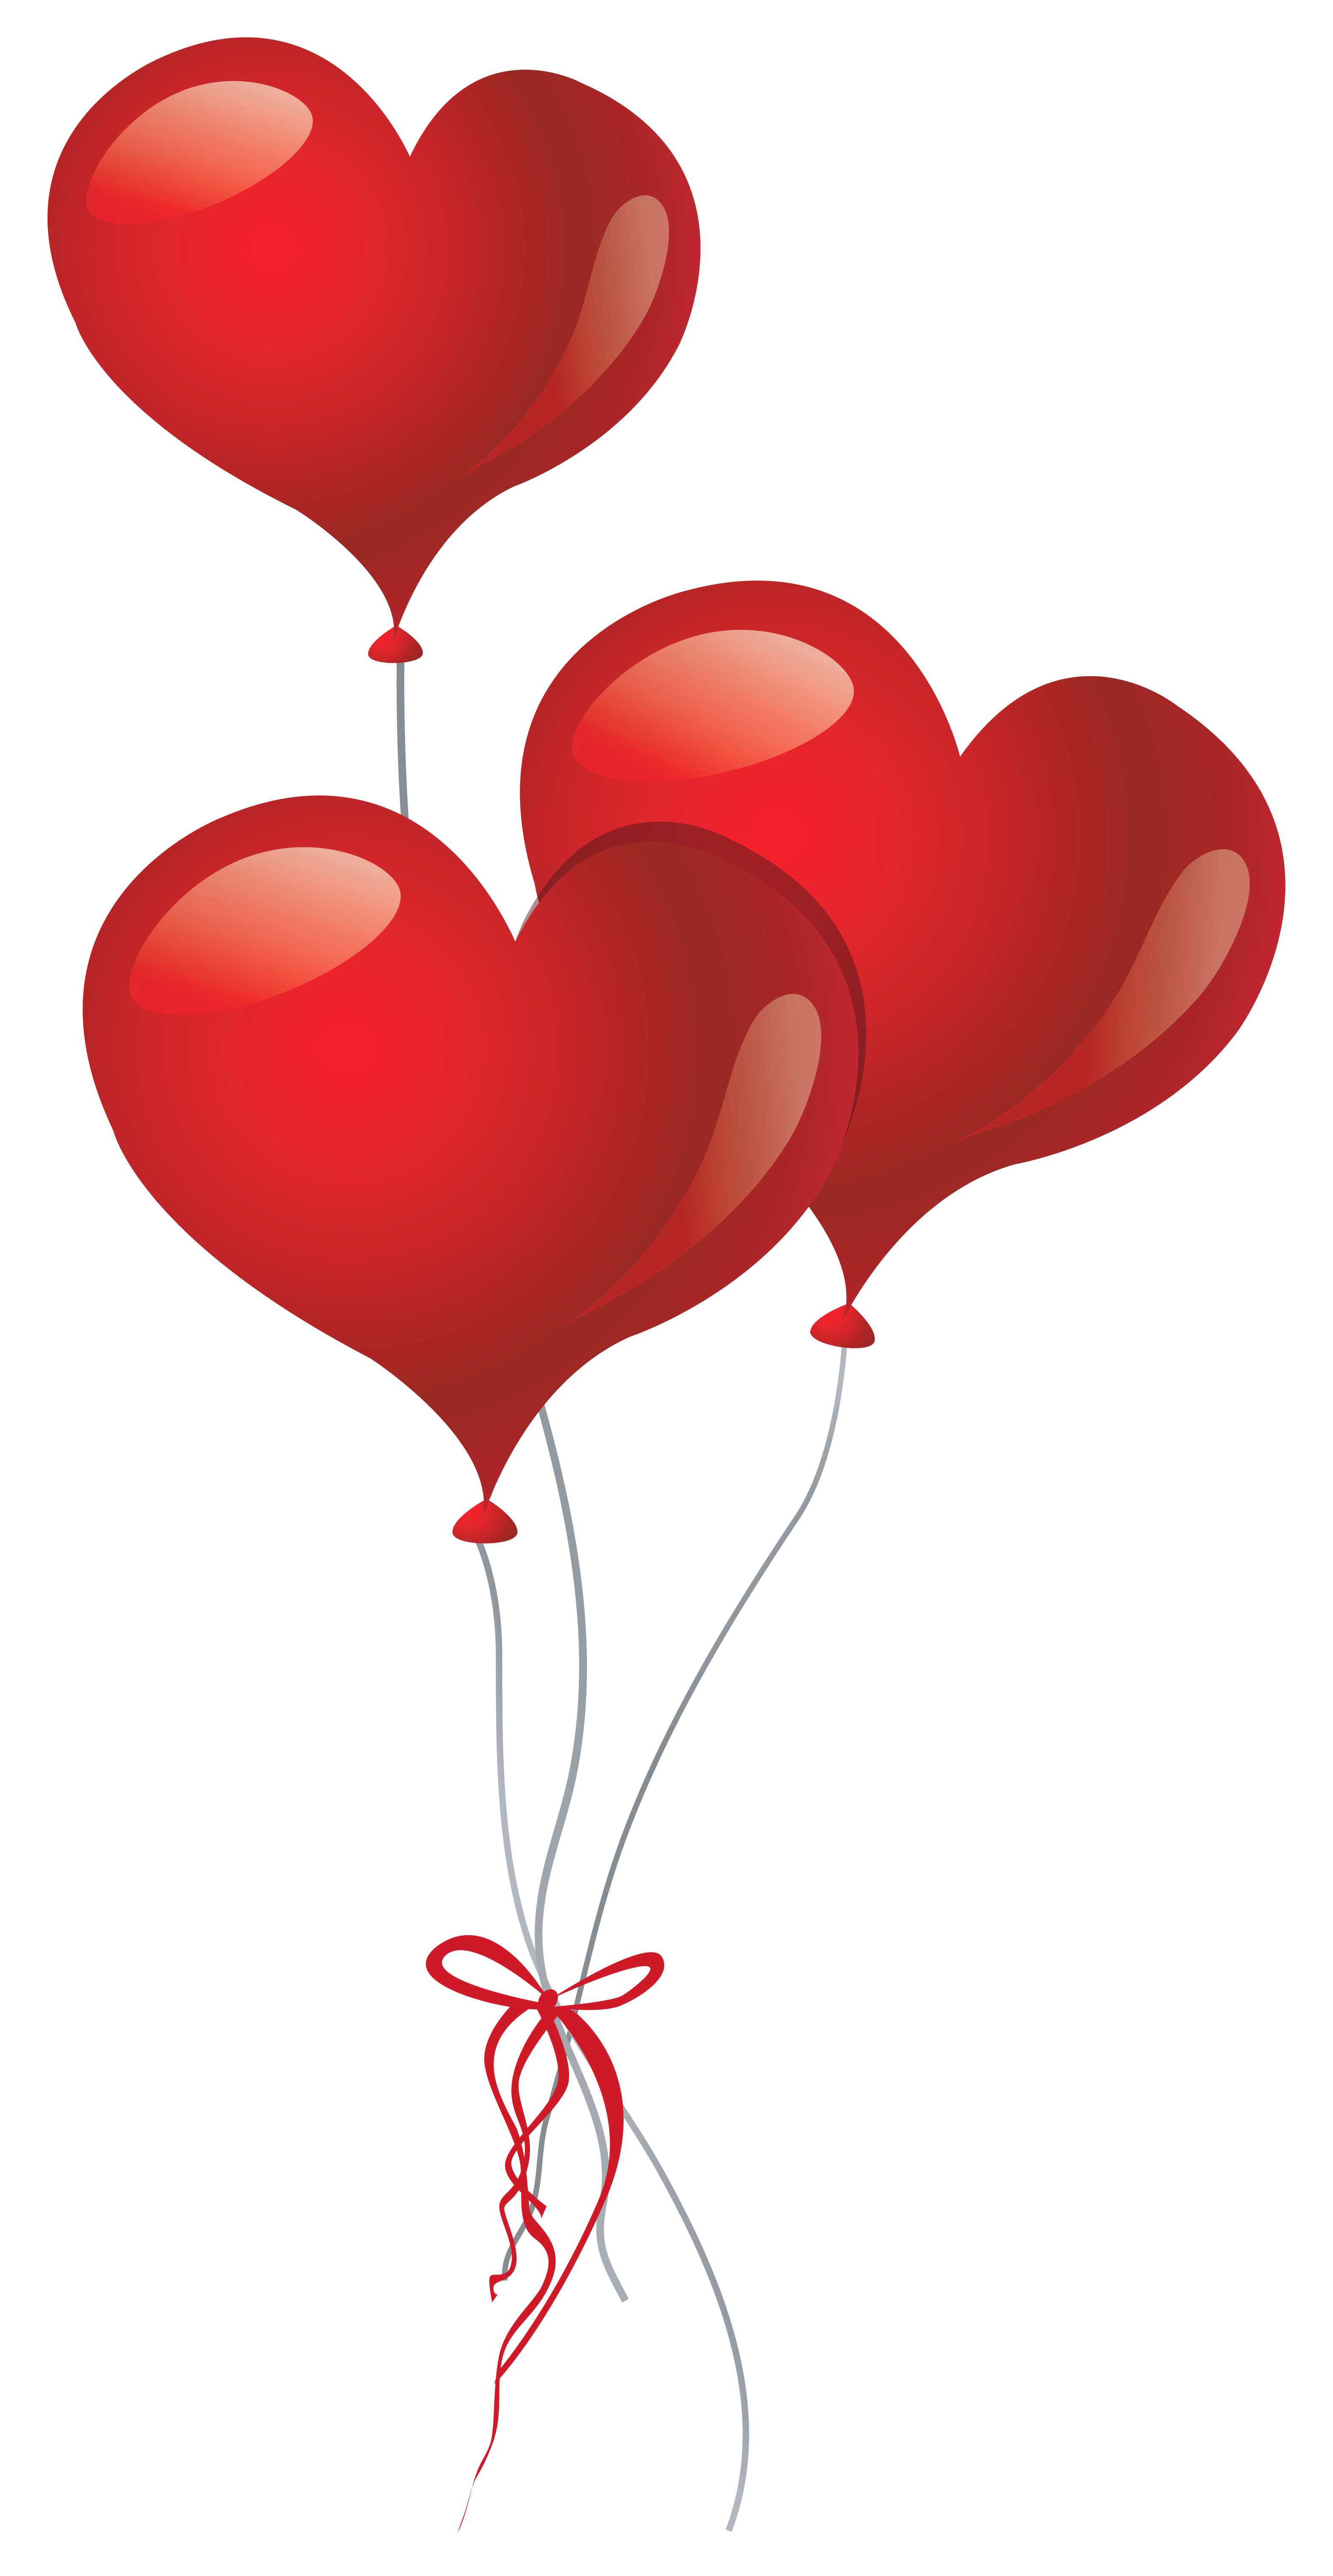 Heart Balloons Png Clipart Picture Gallery Yopriceville High Quality Images And Transparent Png Free Clipart Heart Balloons Balloons Heart Wallpaper